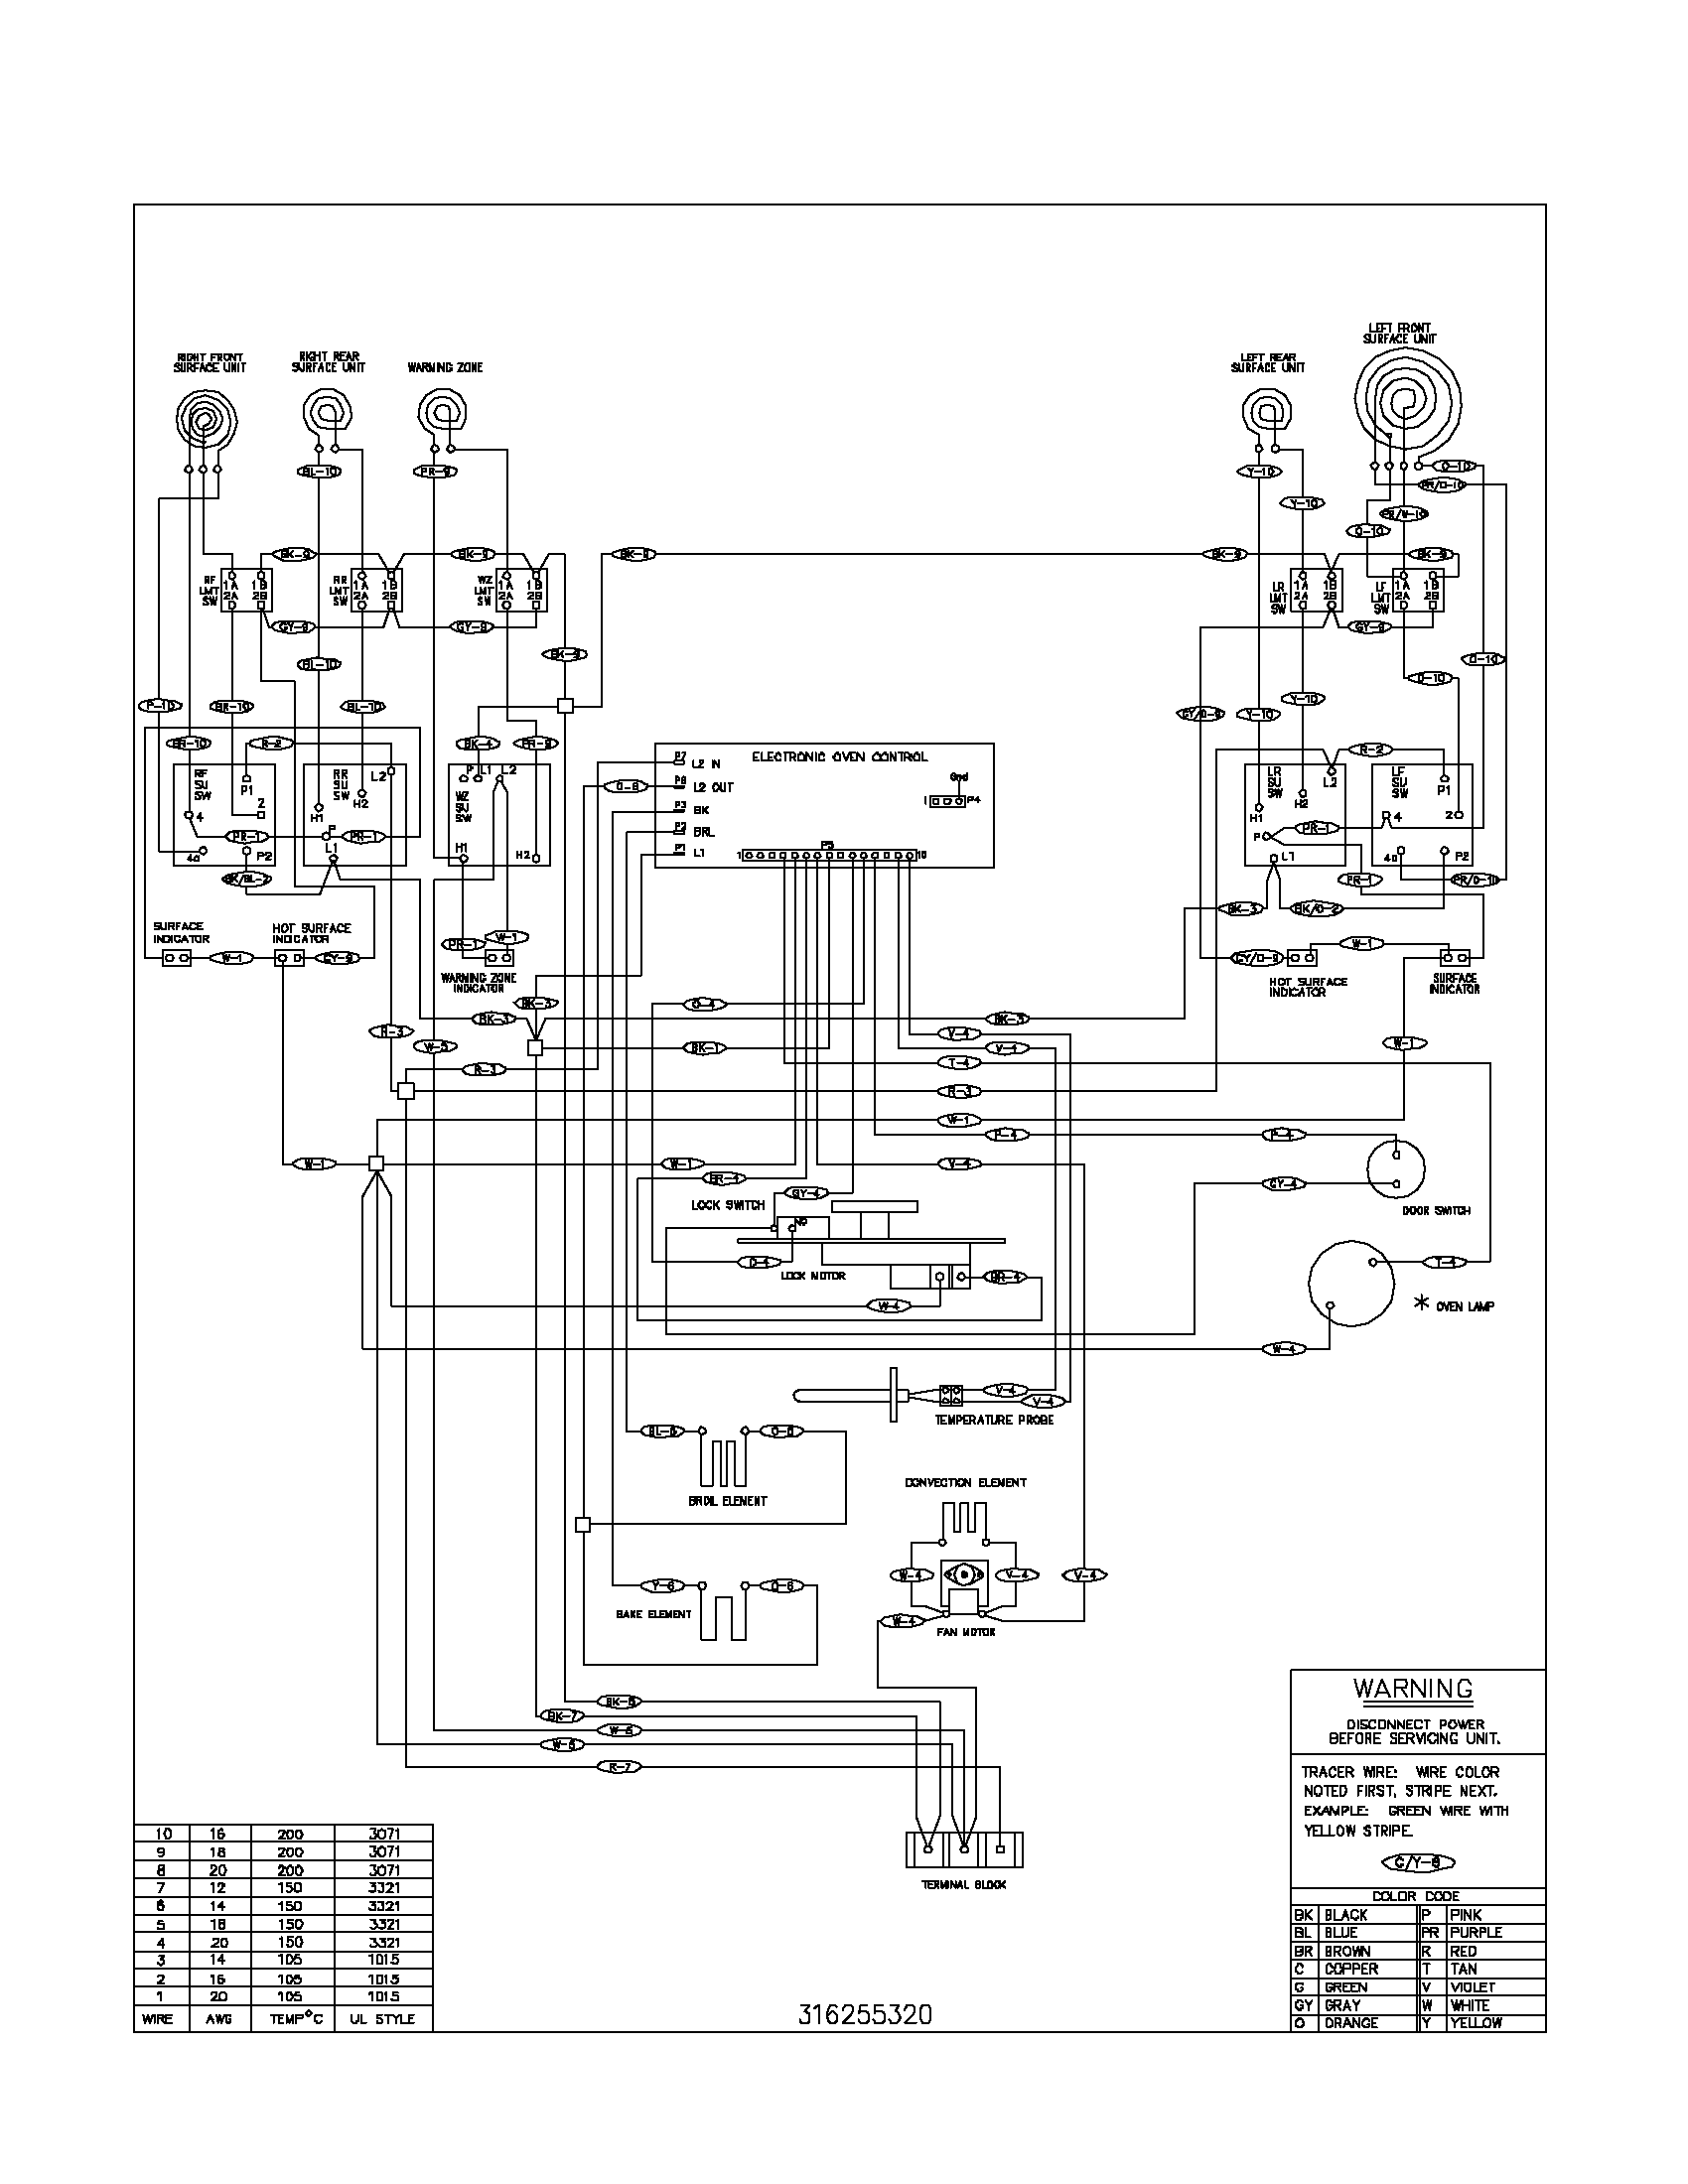 ge electric range parts diagram wiring diagram local Jenn-Air Downdraft Cooktop Parts